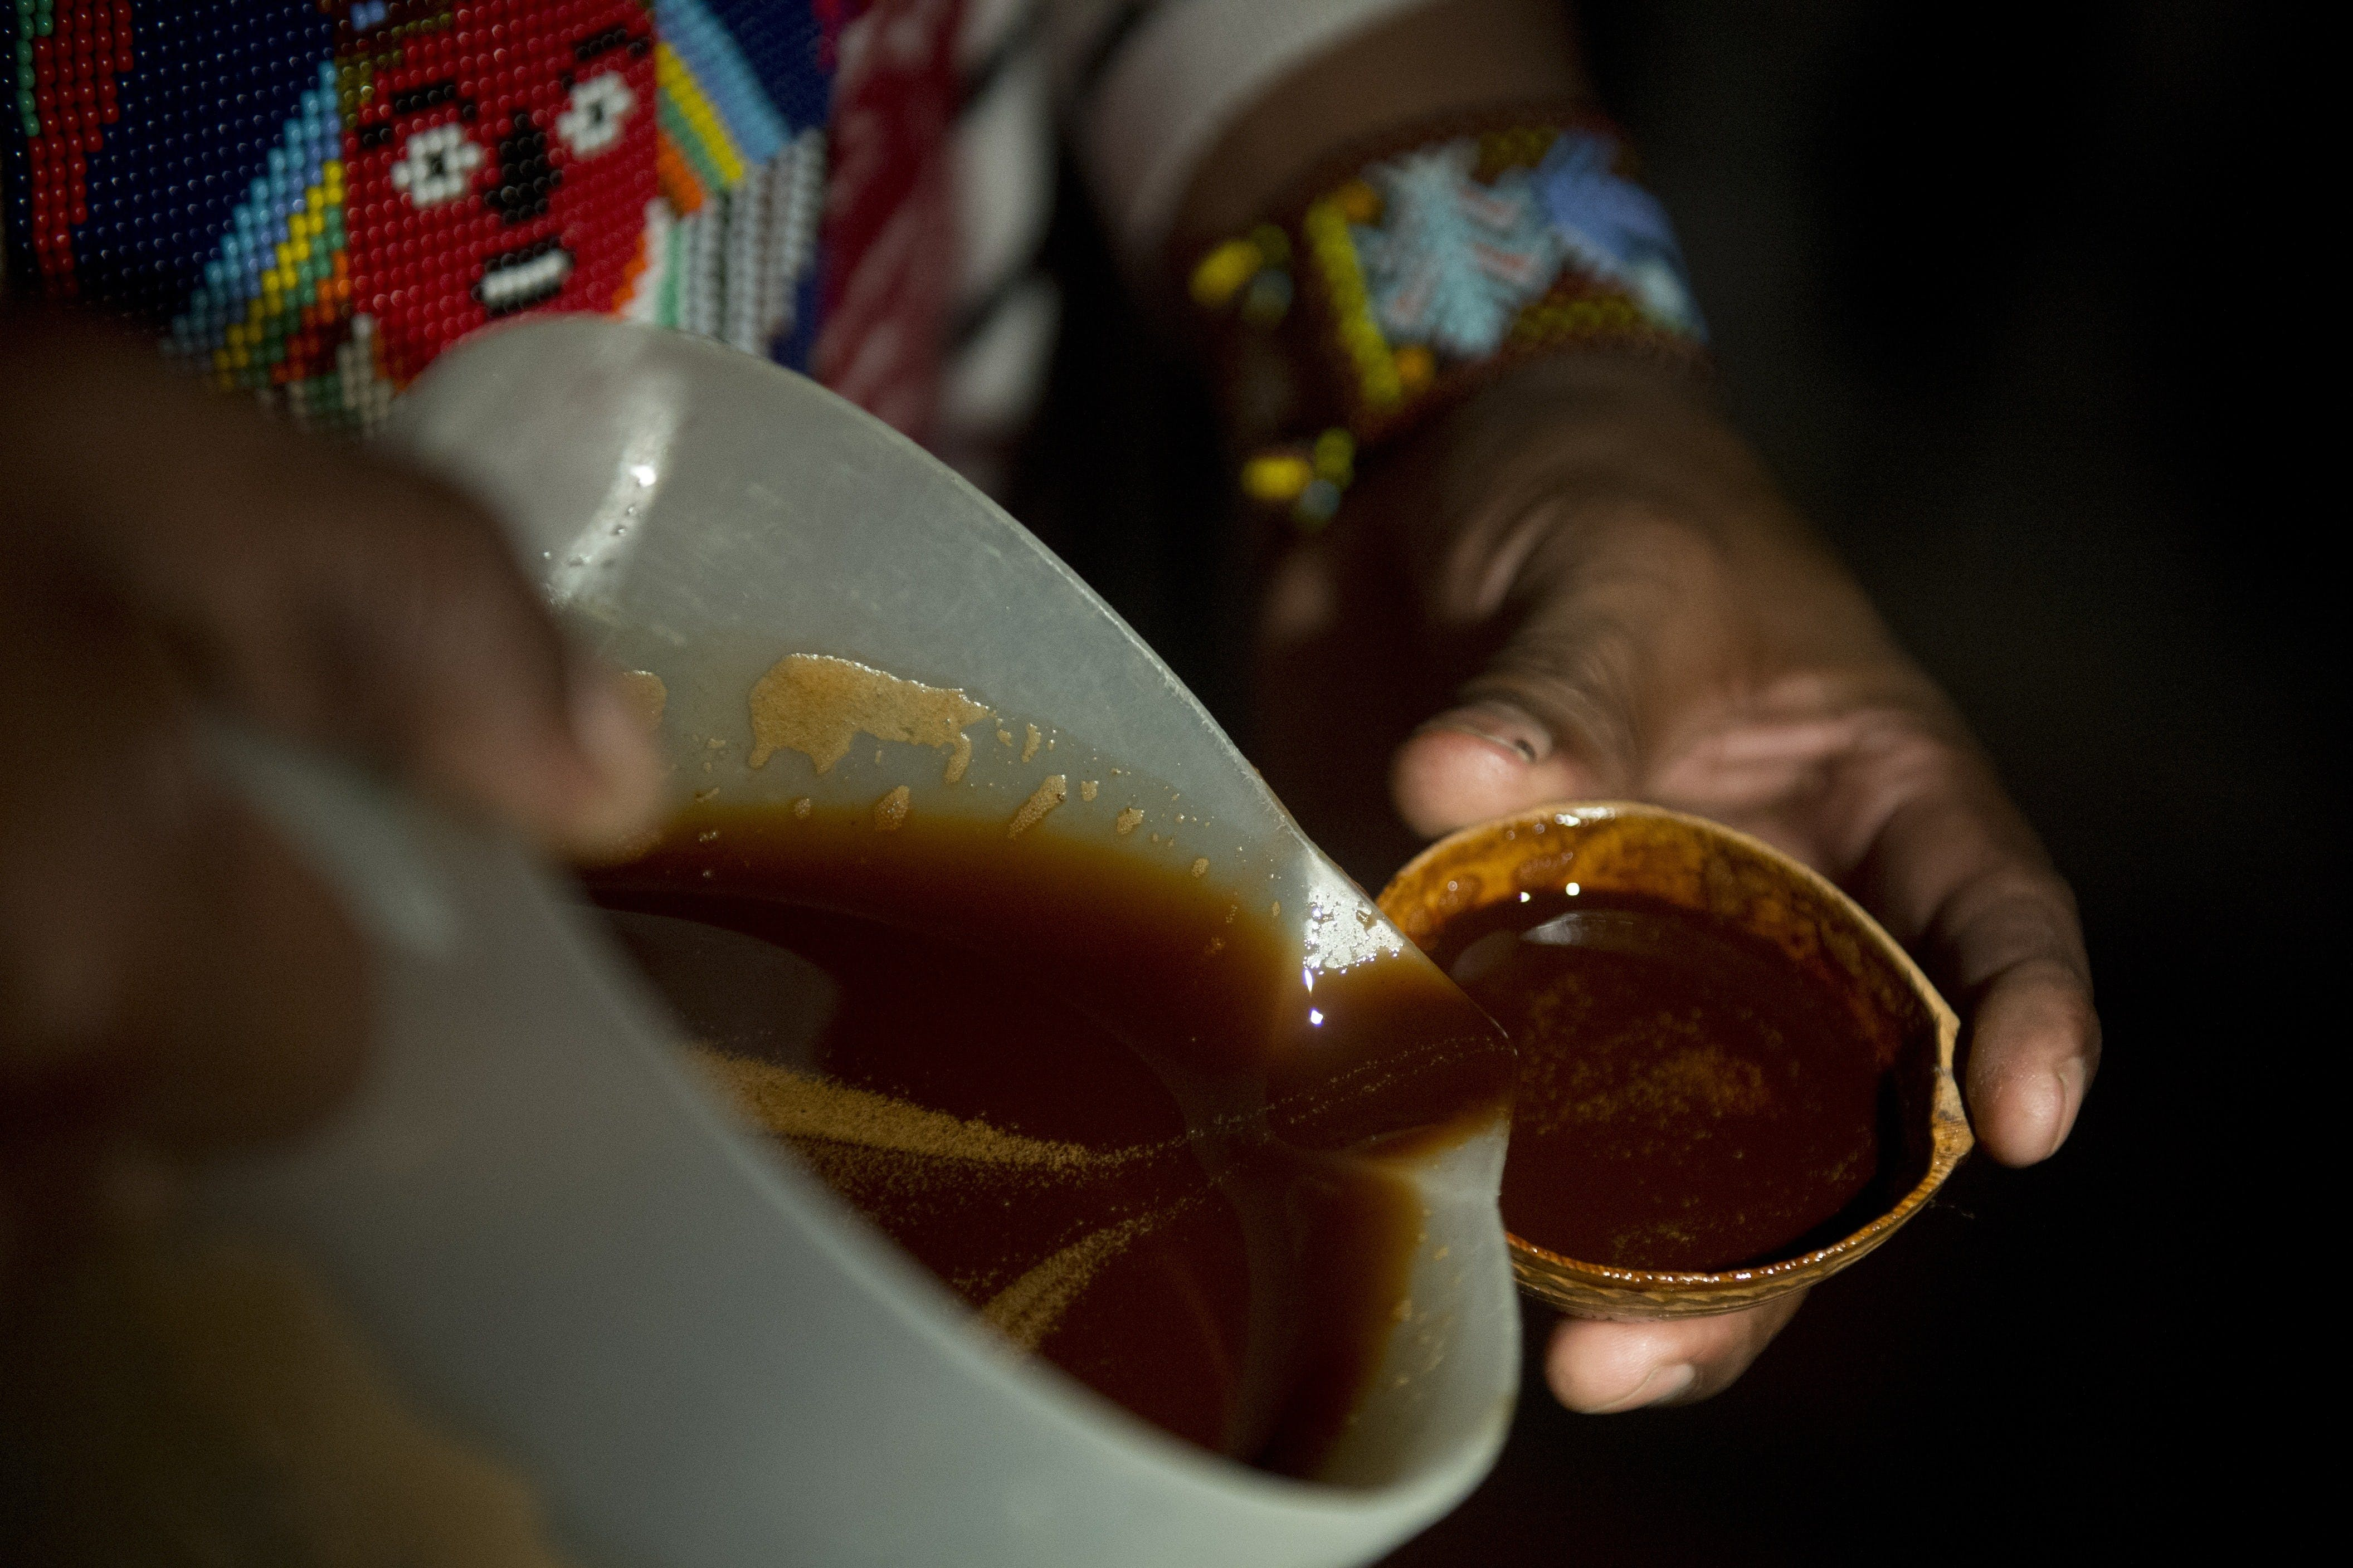 Study finds that ayahuasca could treat a previously untreatable form of depression1 California Considers Licensing Its Own Banks For The Cannabis Industry